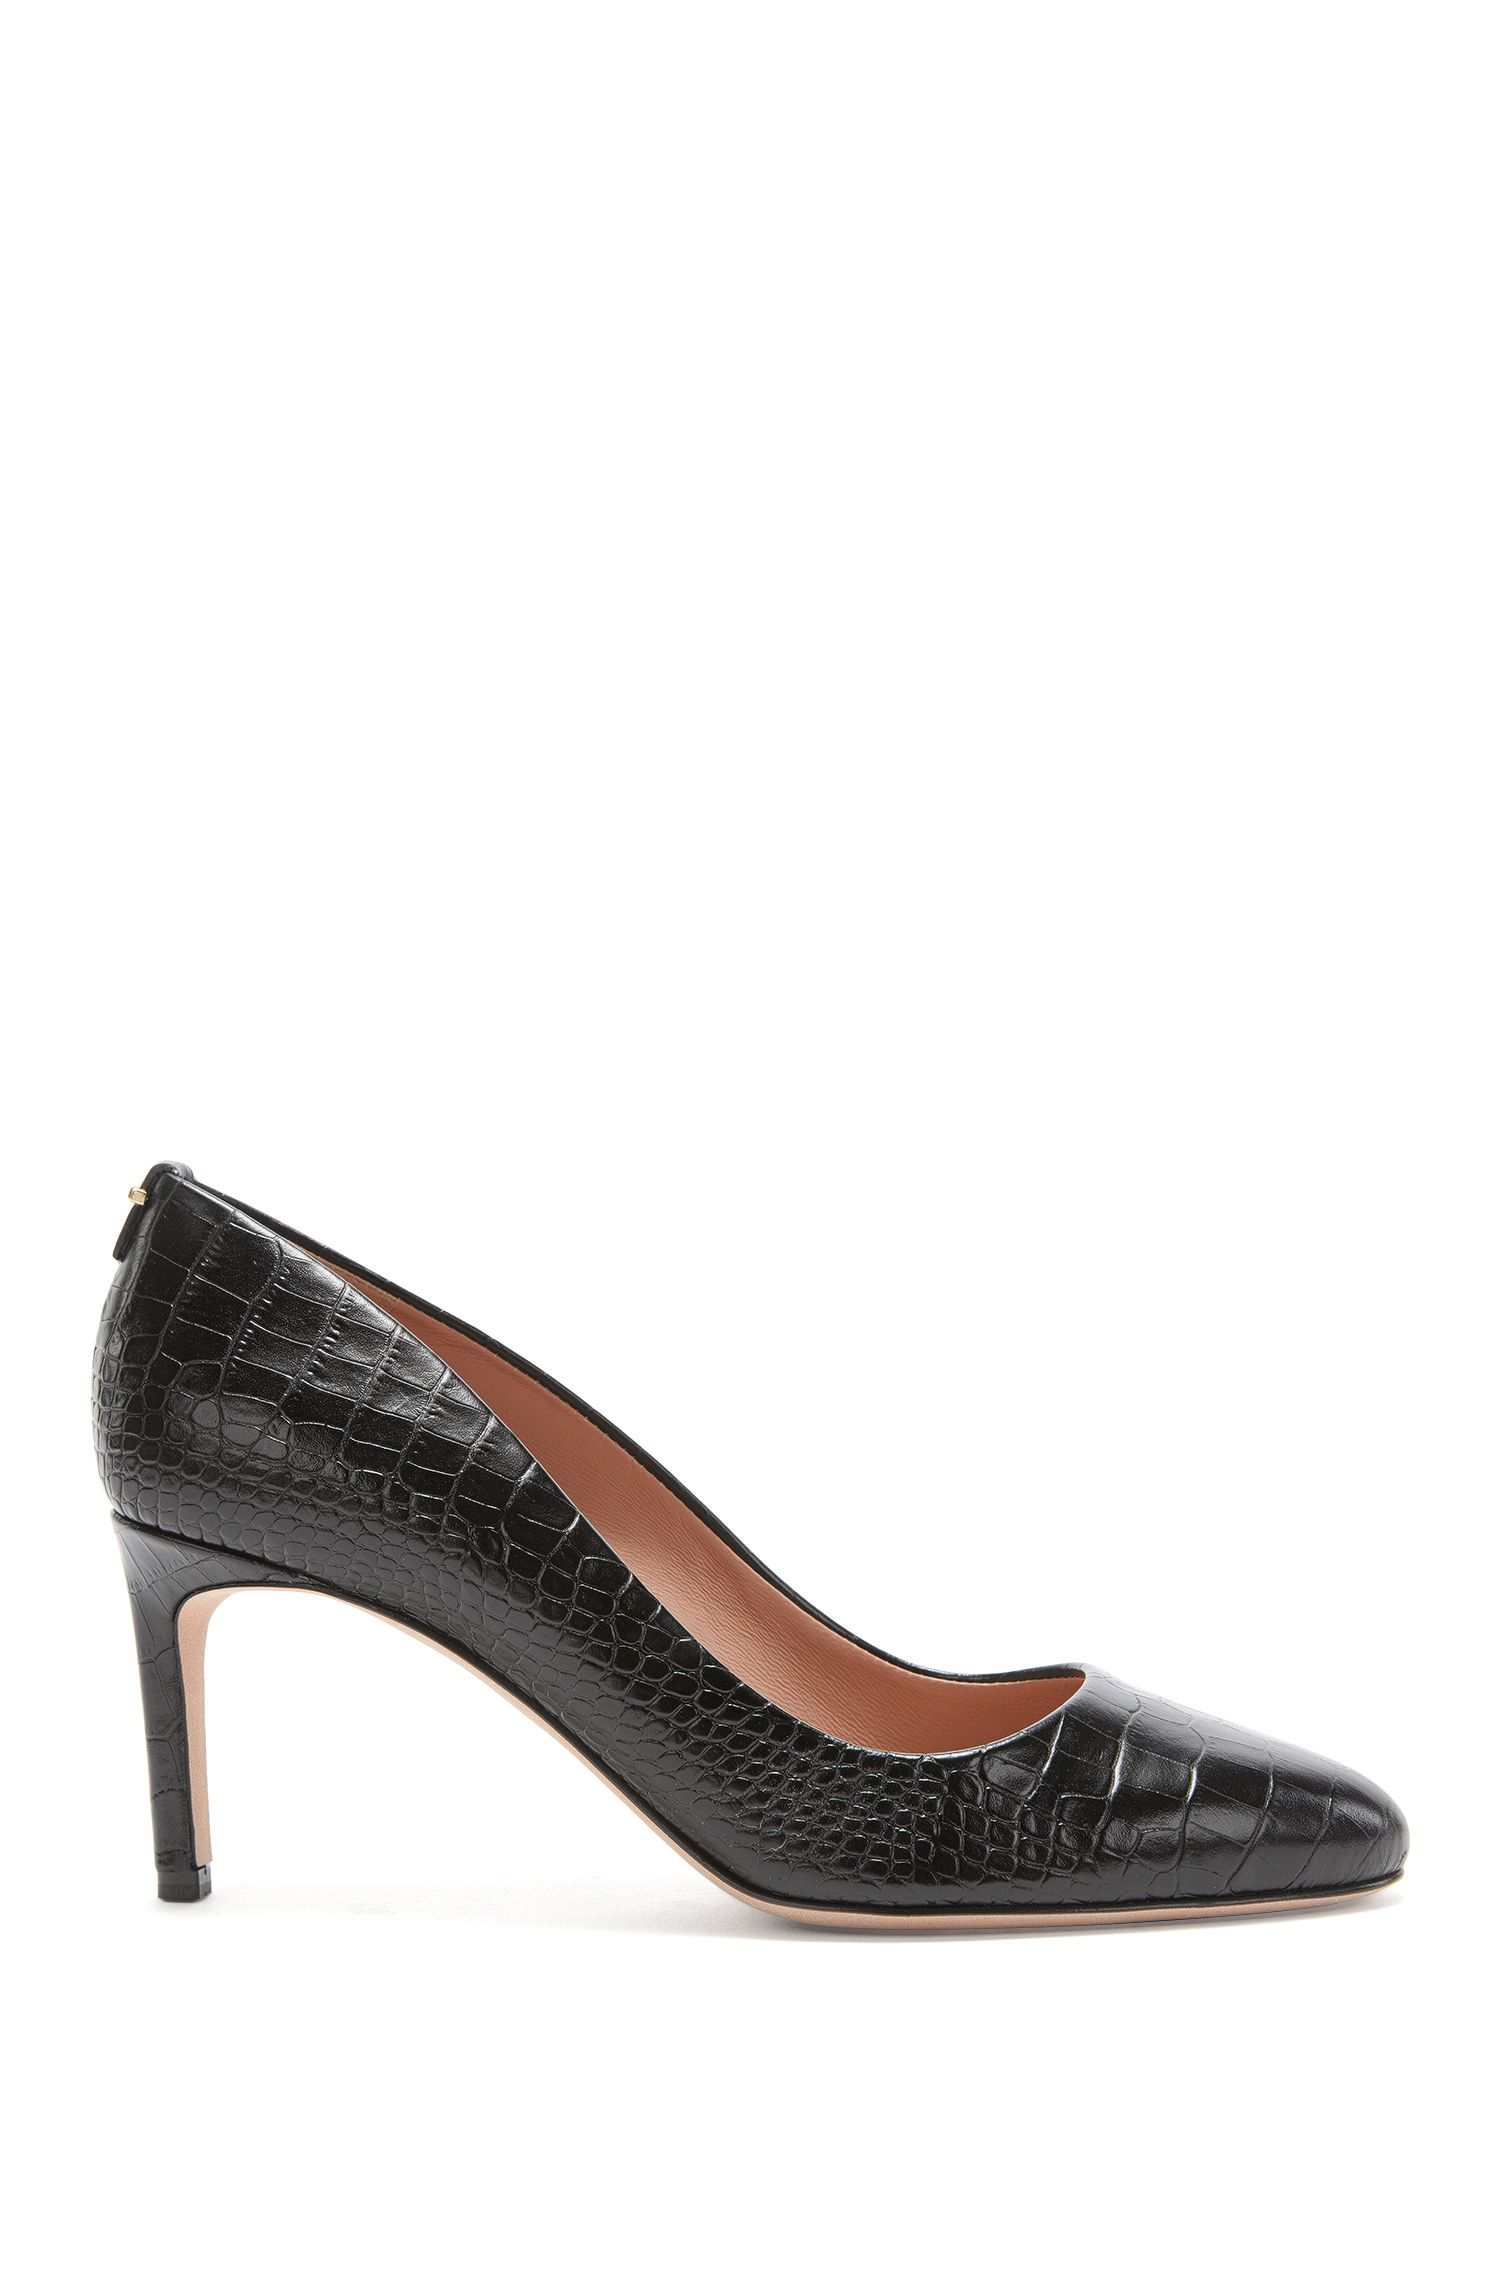 BOSS Luxury Staple pumps in Italian leather